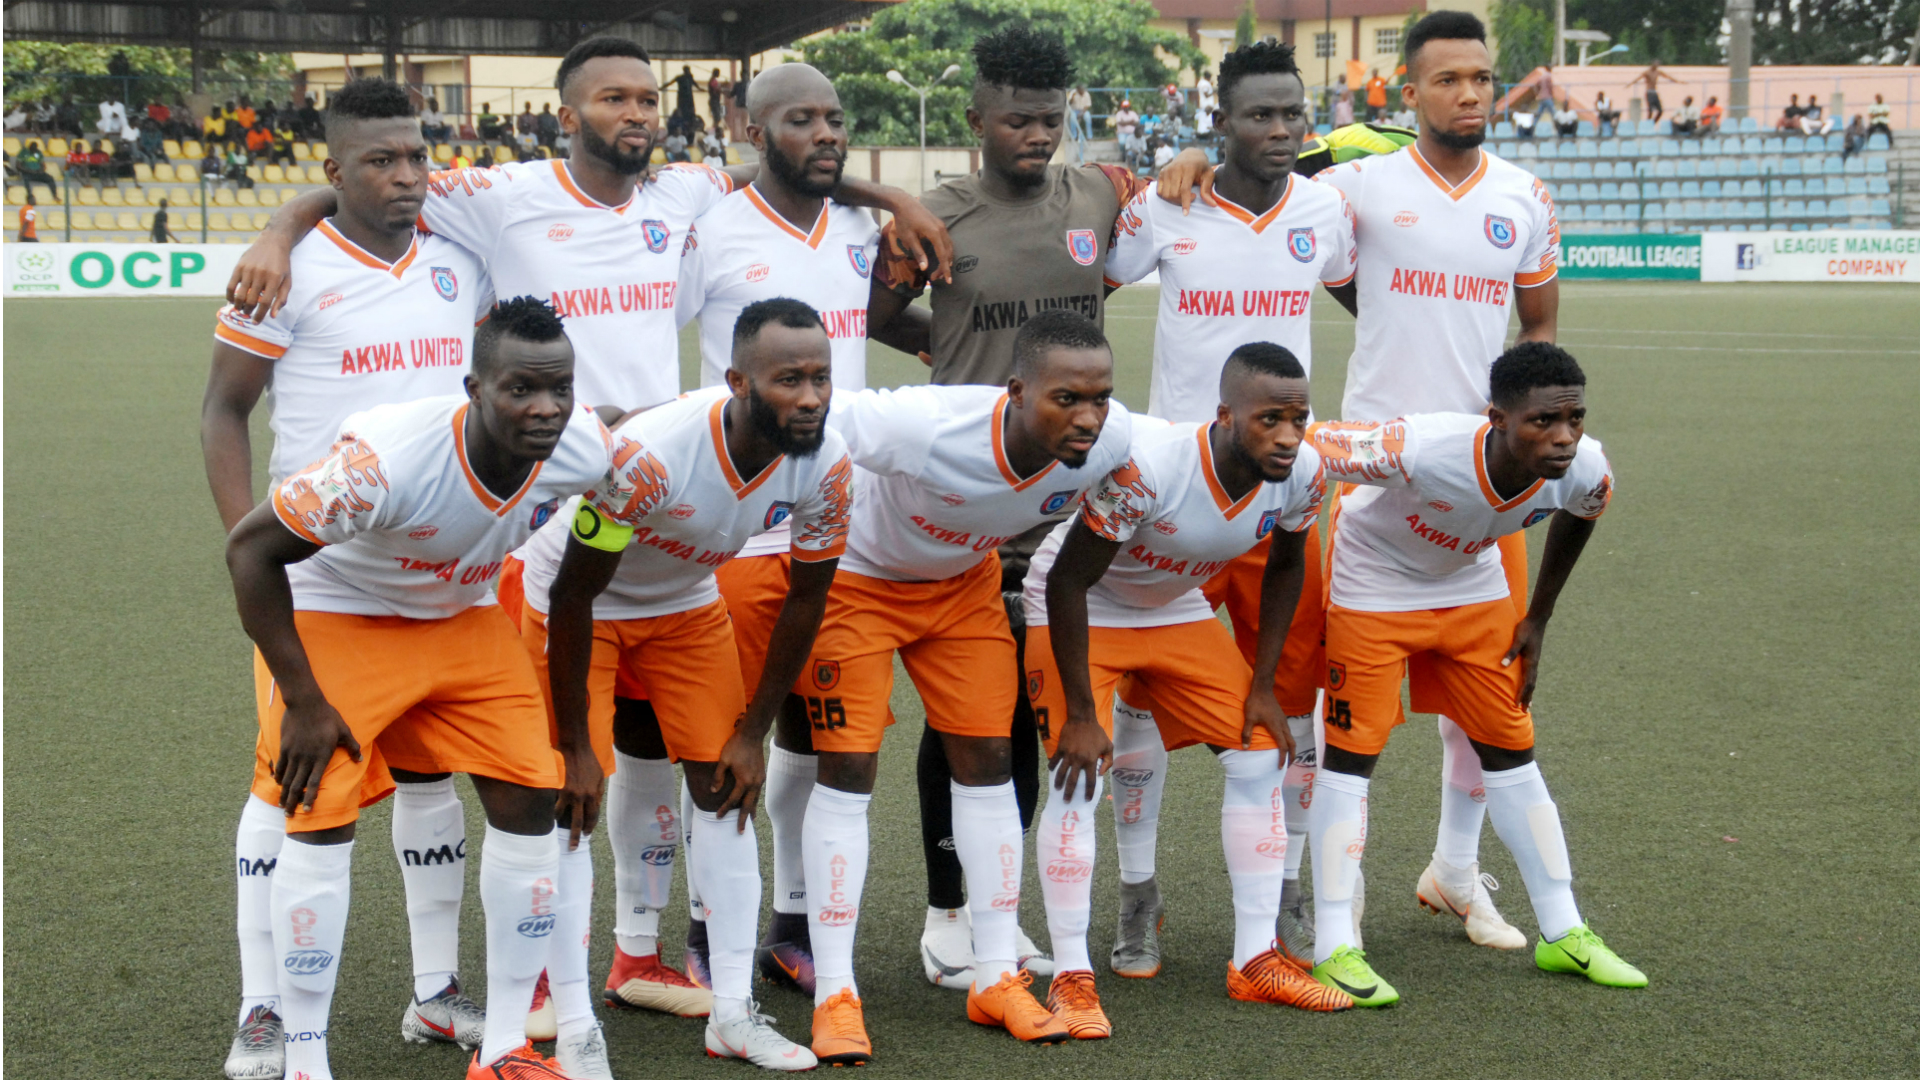 The management of Akwa United FC has invited its players for contract renegotiation as football clubs and lovers in Nigeria await the resumption of the 2020/2021 football season. The Chairman of the club, Paul Bassey who made this known to journalists in Uyo on Thursday, said the players would be made to undergo sessions on […]